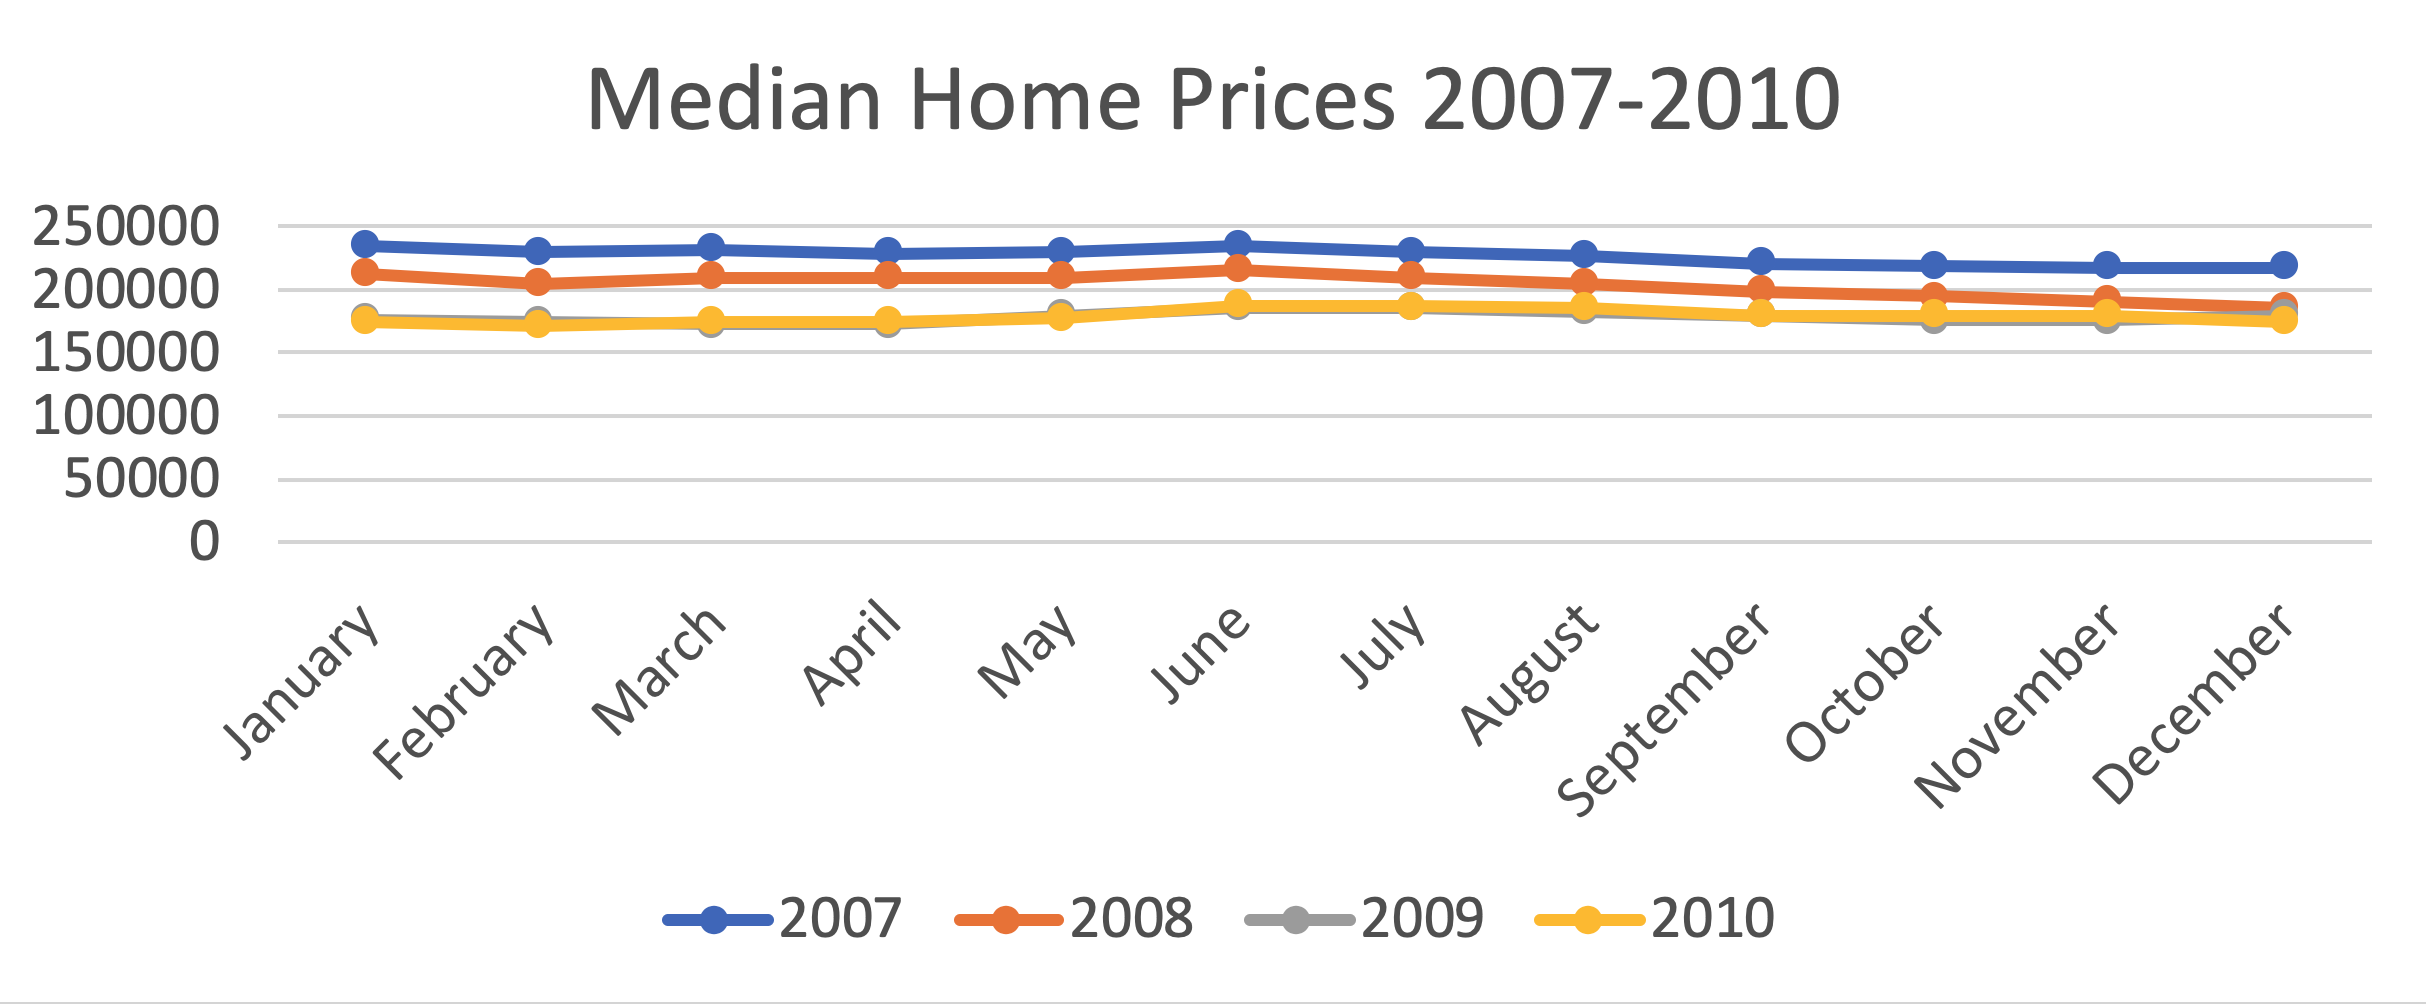 median home prices 2007-2010